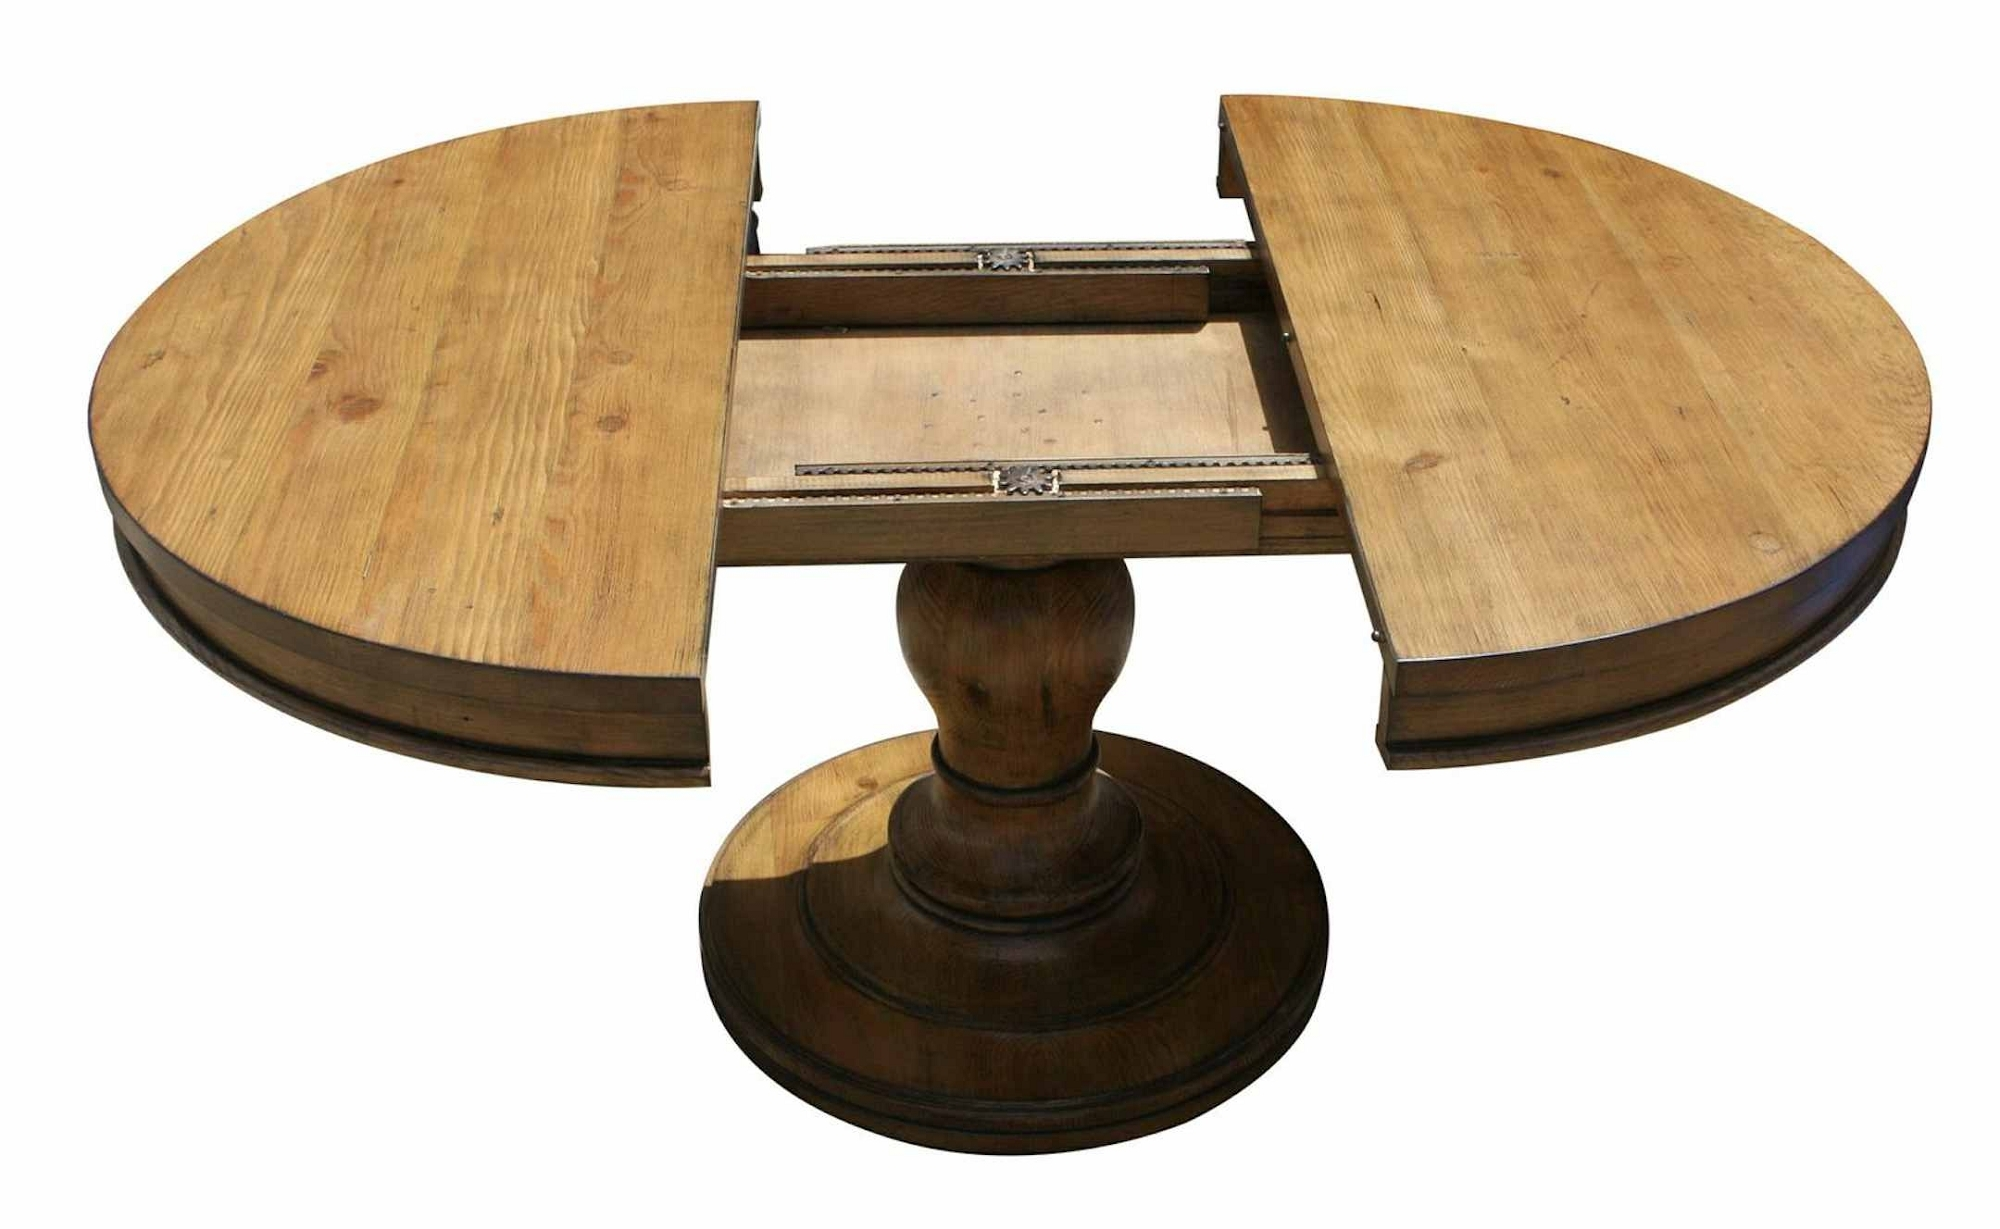 Top Round Dining Table For 6 With Leaf - Foter MJ39